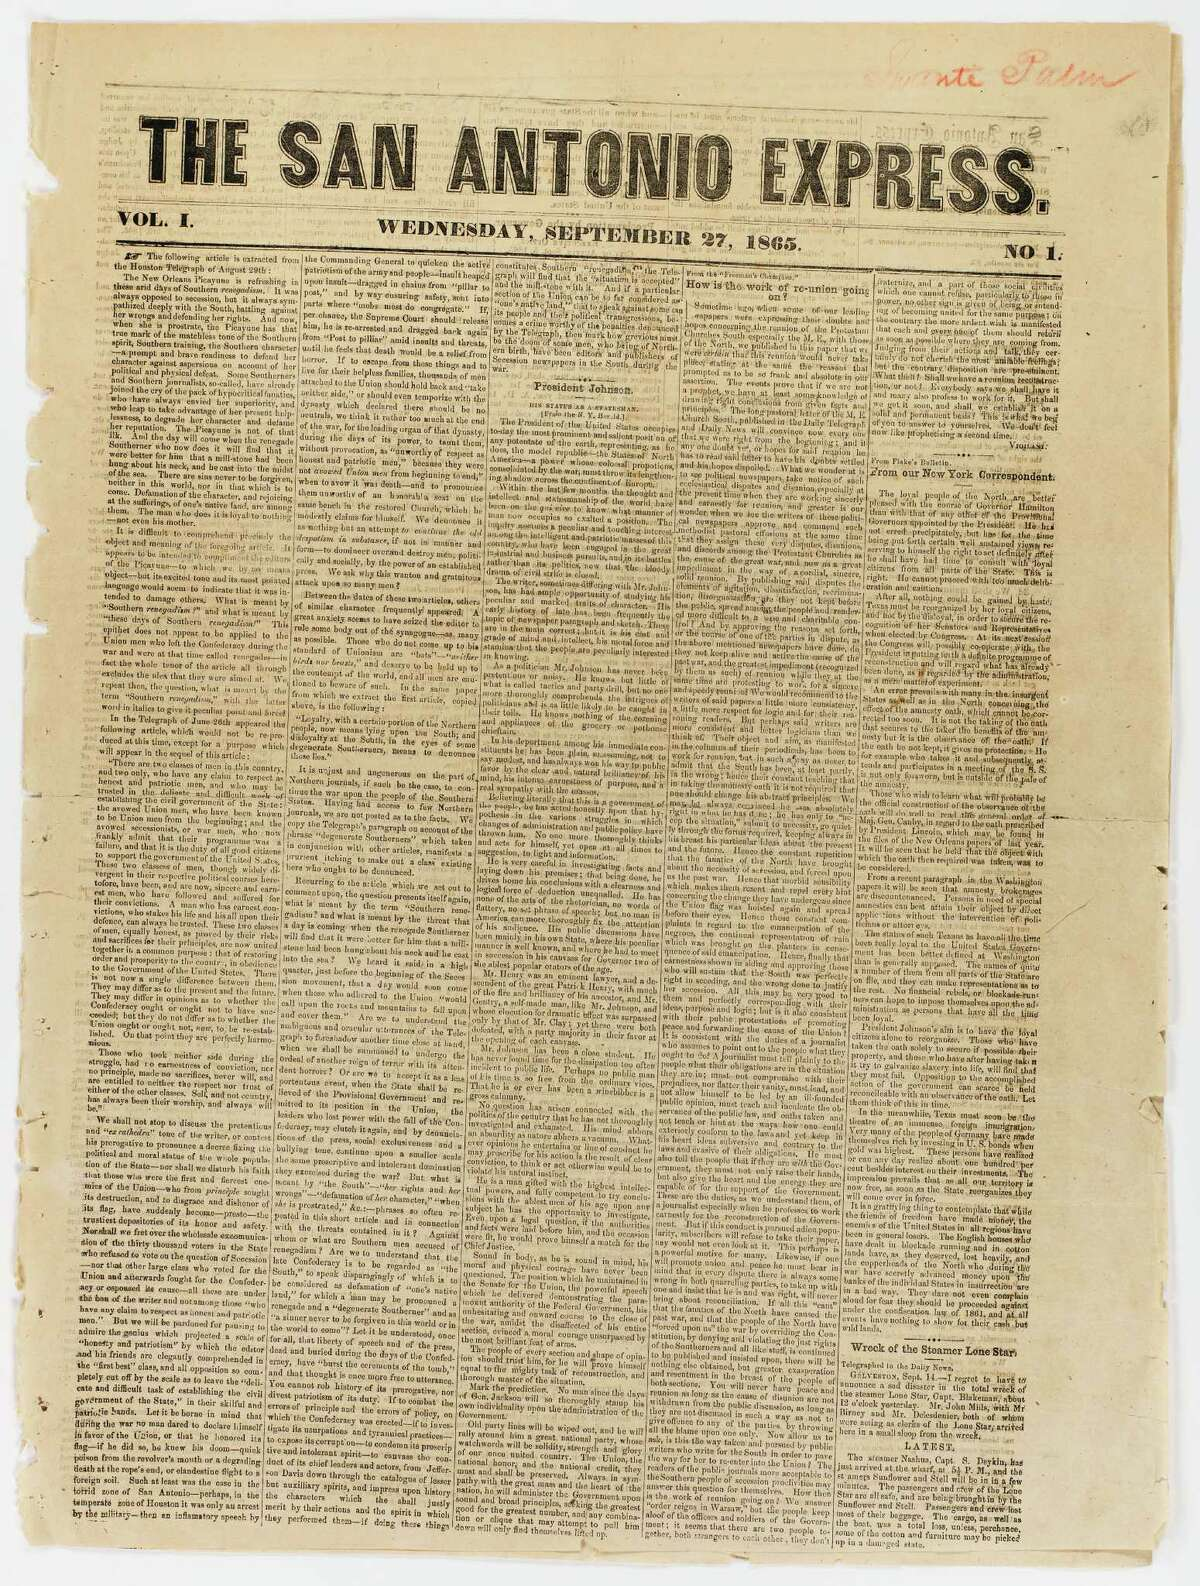 The first edition of the San Antonio Express, published Sept. 27, 1865, was a sea of gray type - no photos or big headlines to put priorities on more important stories. It was four pages.